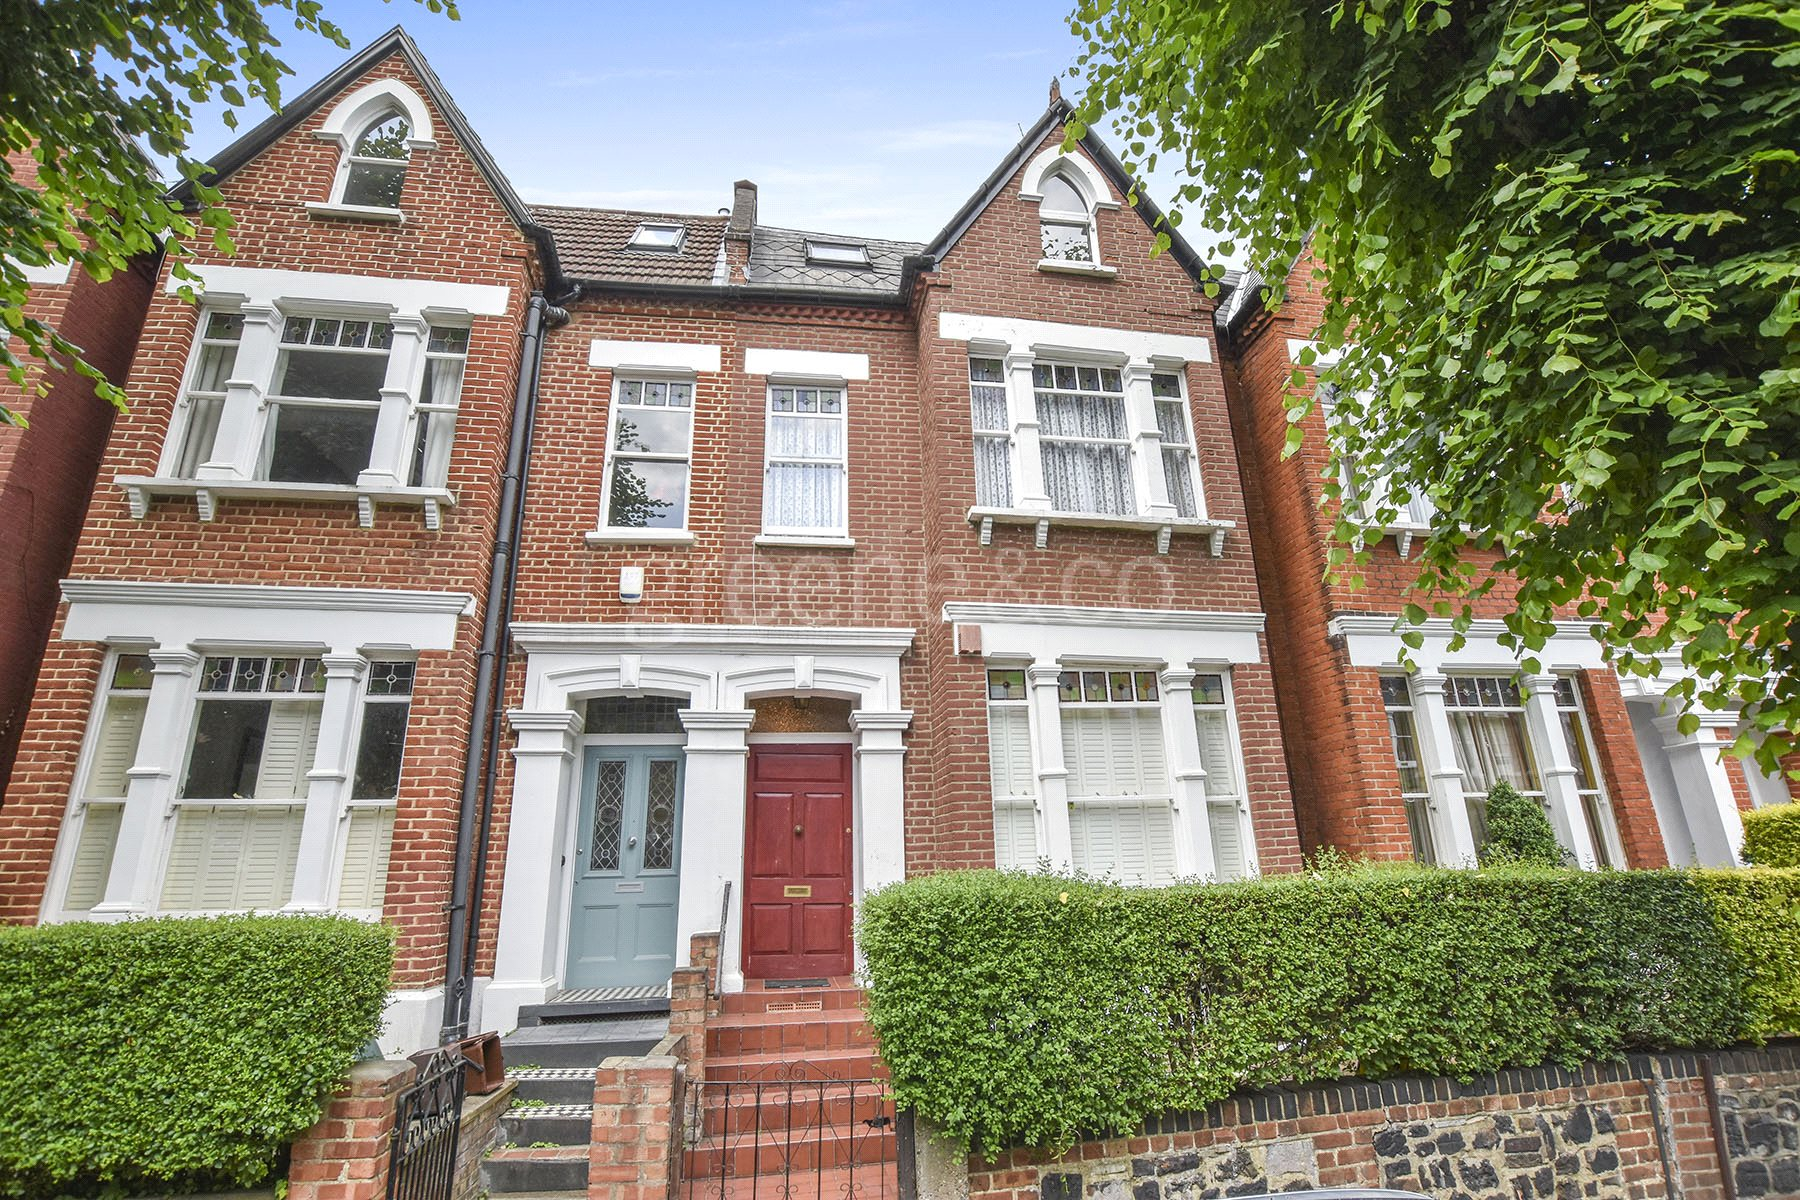 4 Bedrooms Terraced House for sale in Gladsmuir Road, Whitehall Conservation, Archway, London, N19